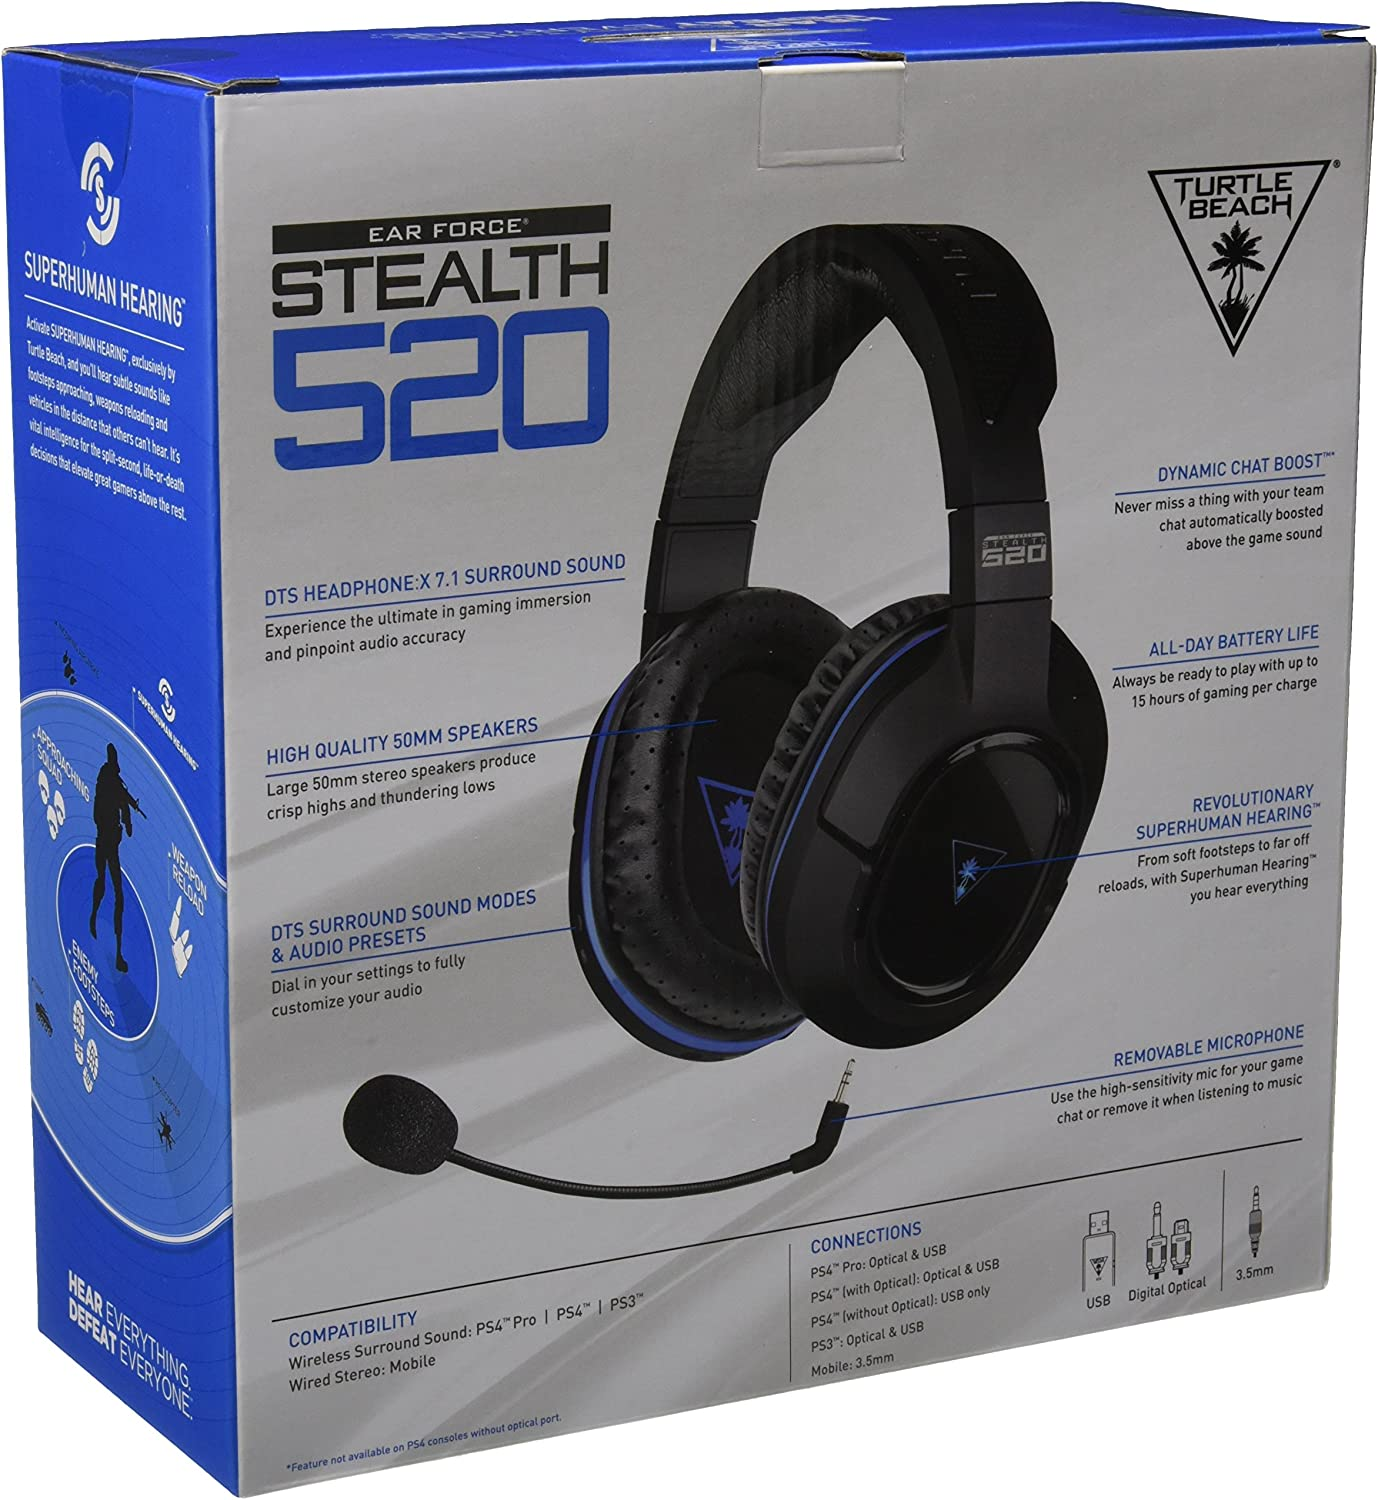 Turtle Beach Stealth 520 Premium Fully Wireless Gaming Usb Headphone Wiring Diagram Headset Ps4 Pro Ps3 Discontinued By Manufacturer Video Games